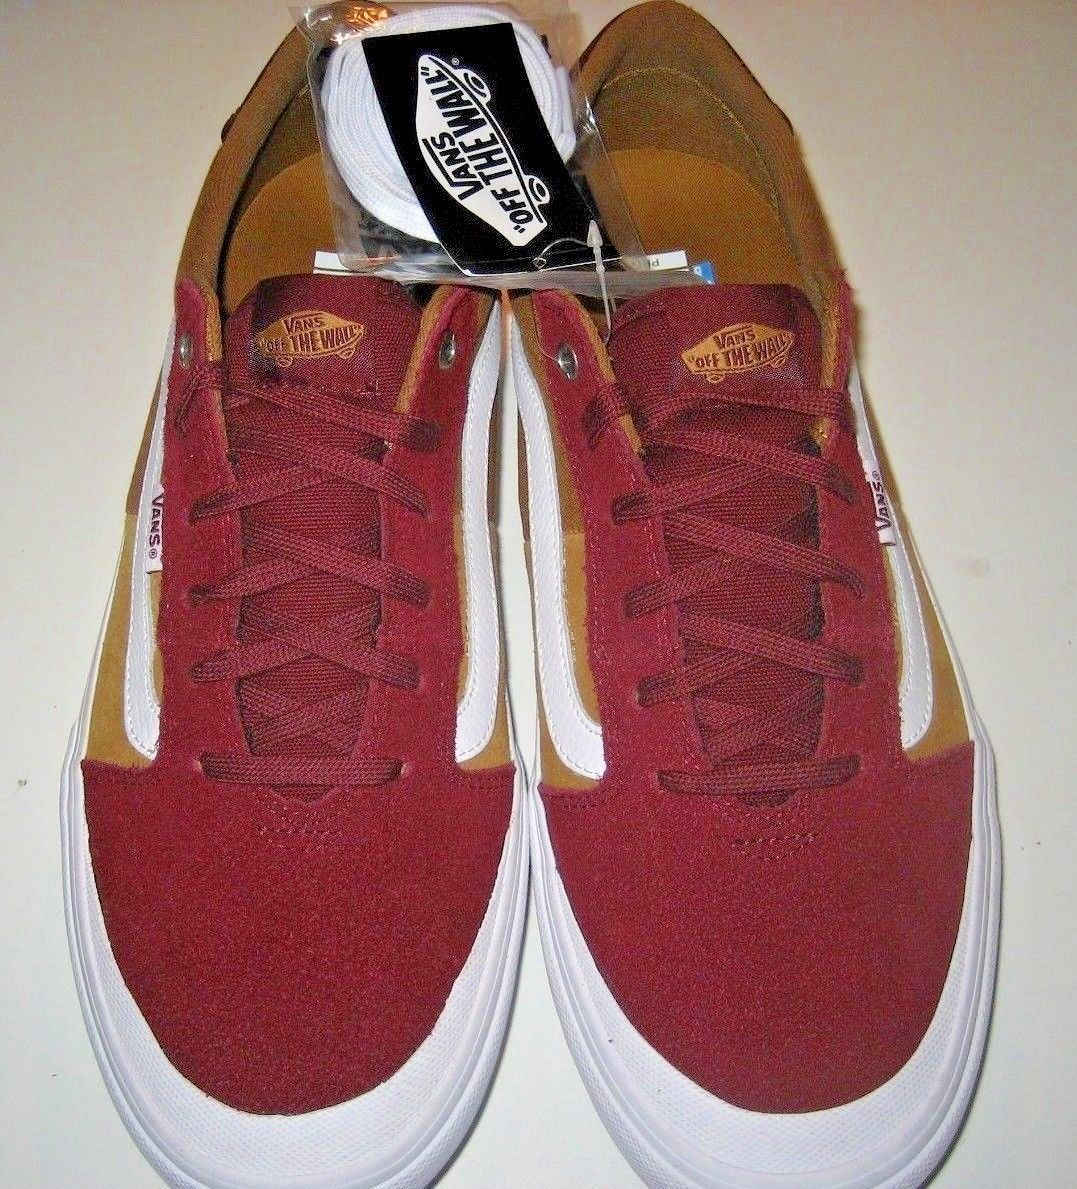 Vans Mens Style 112 Pro Burgundy Medal Bronze Skate Shoes Canvas Suede Size 12